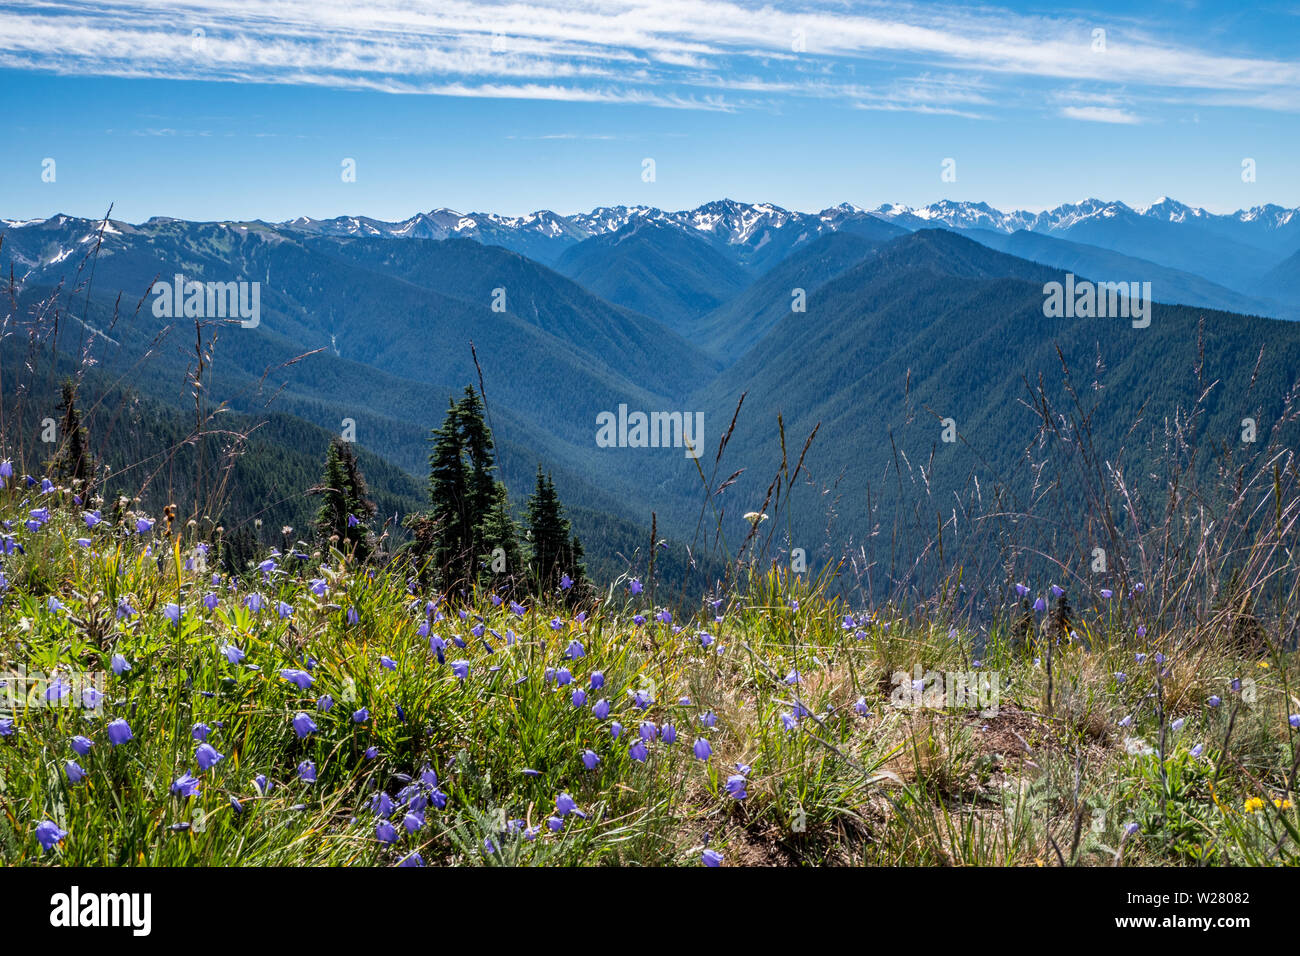 Hurricane Ridge, Olympic National Park, Washington, USA.  View of lupines on a mountain hiking trail. Stock Photo